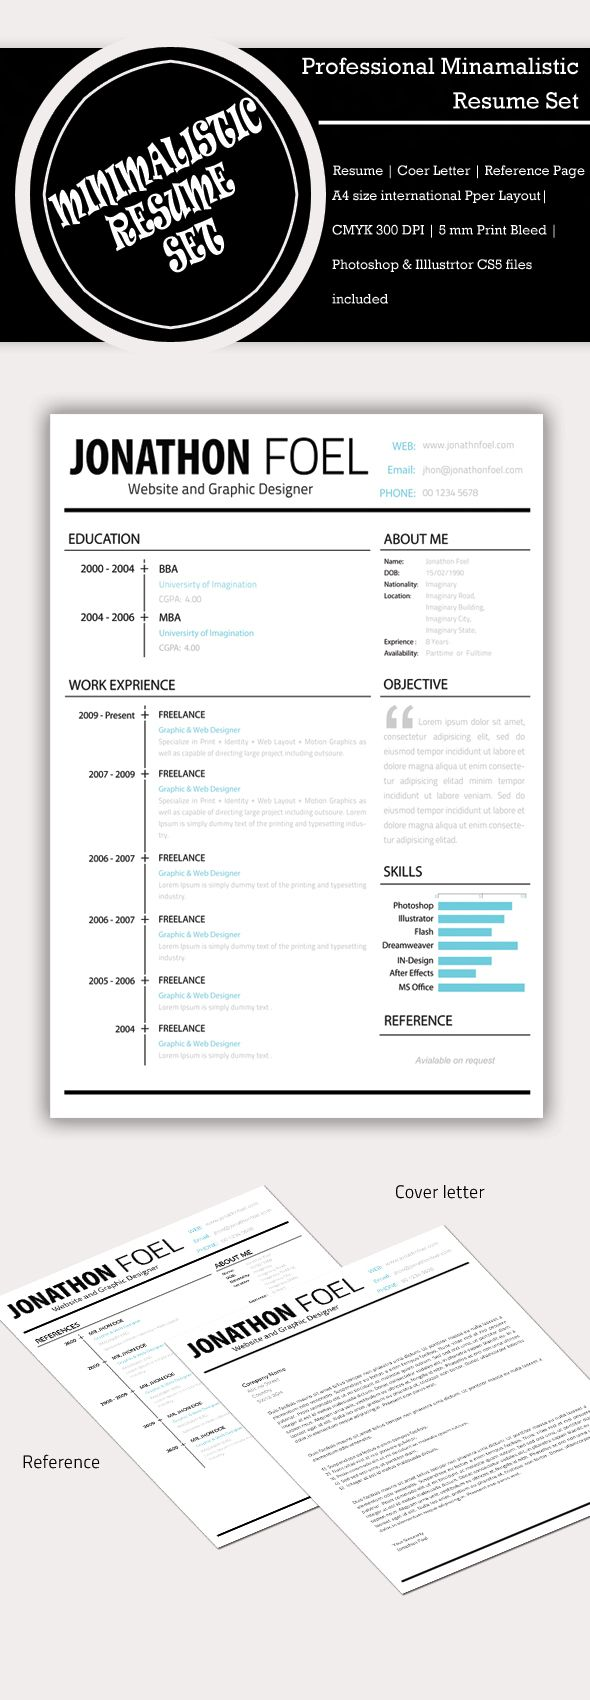 Minimalistic Resume PSD Set (Free-bie) by Simanto , via Behance - Maybe add other bold colors like pink, green, red, orange, etc.